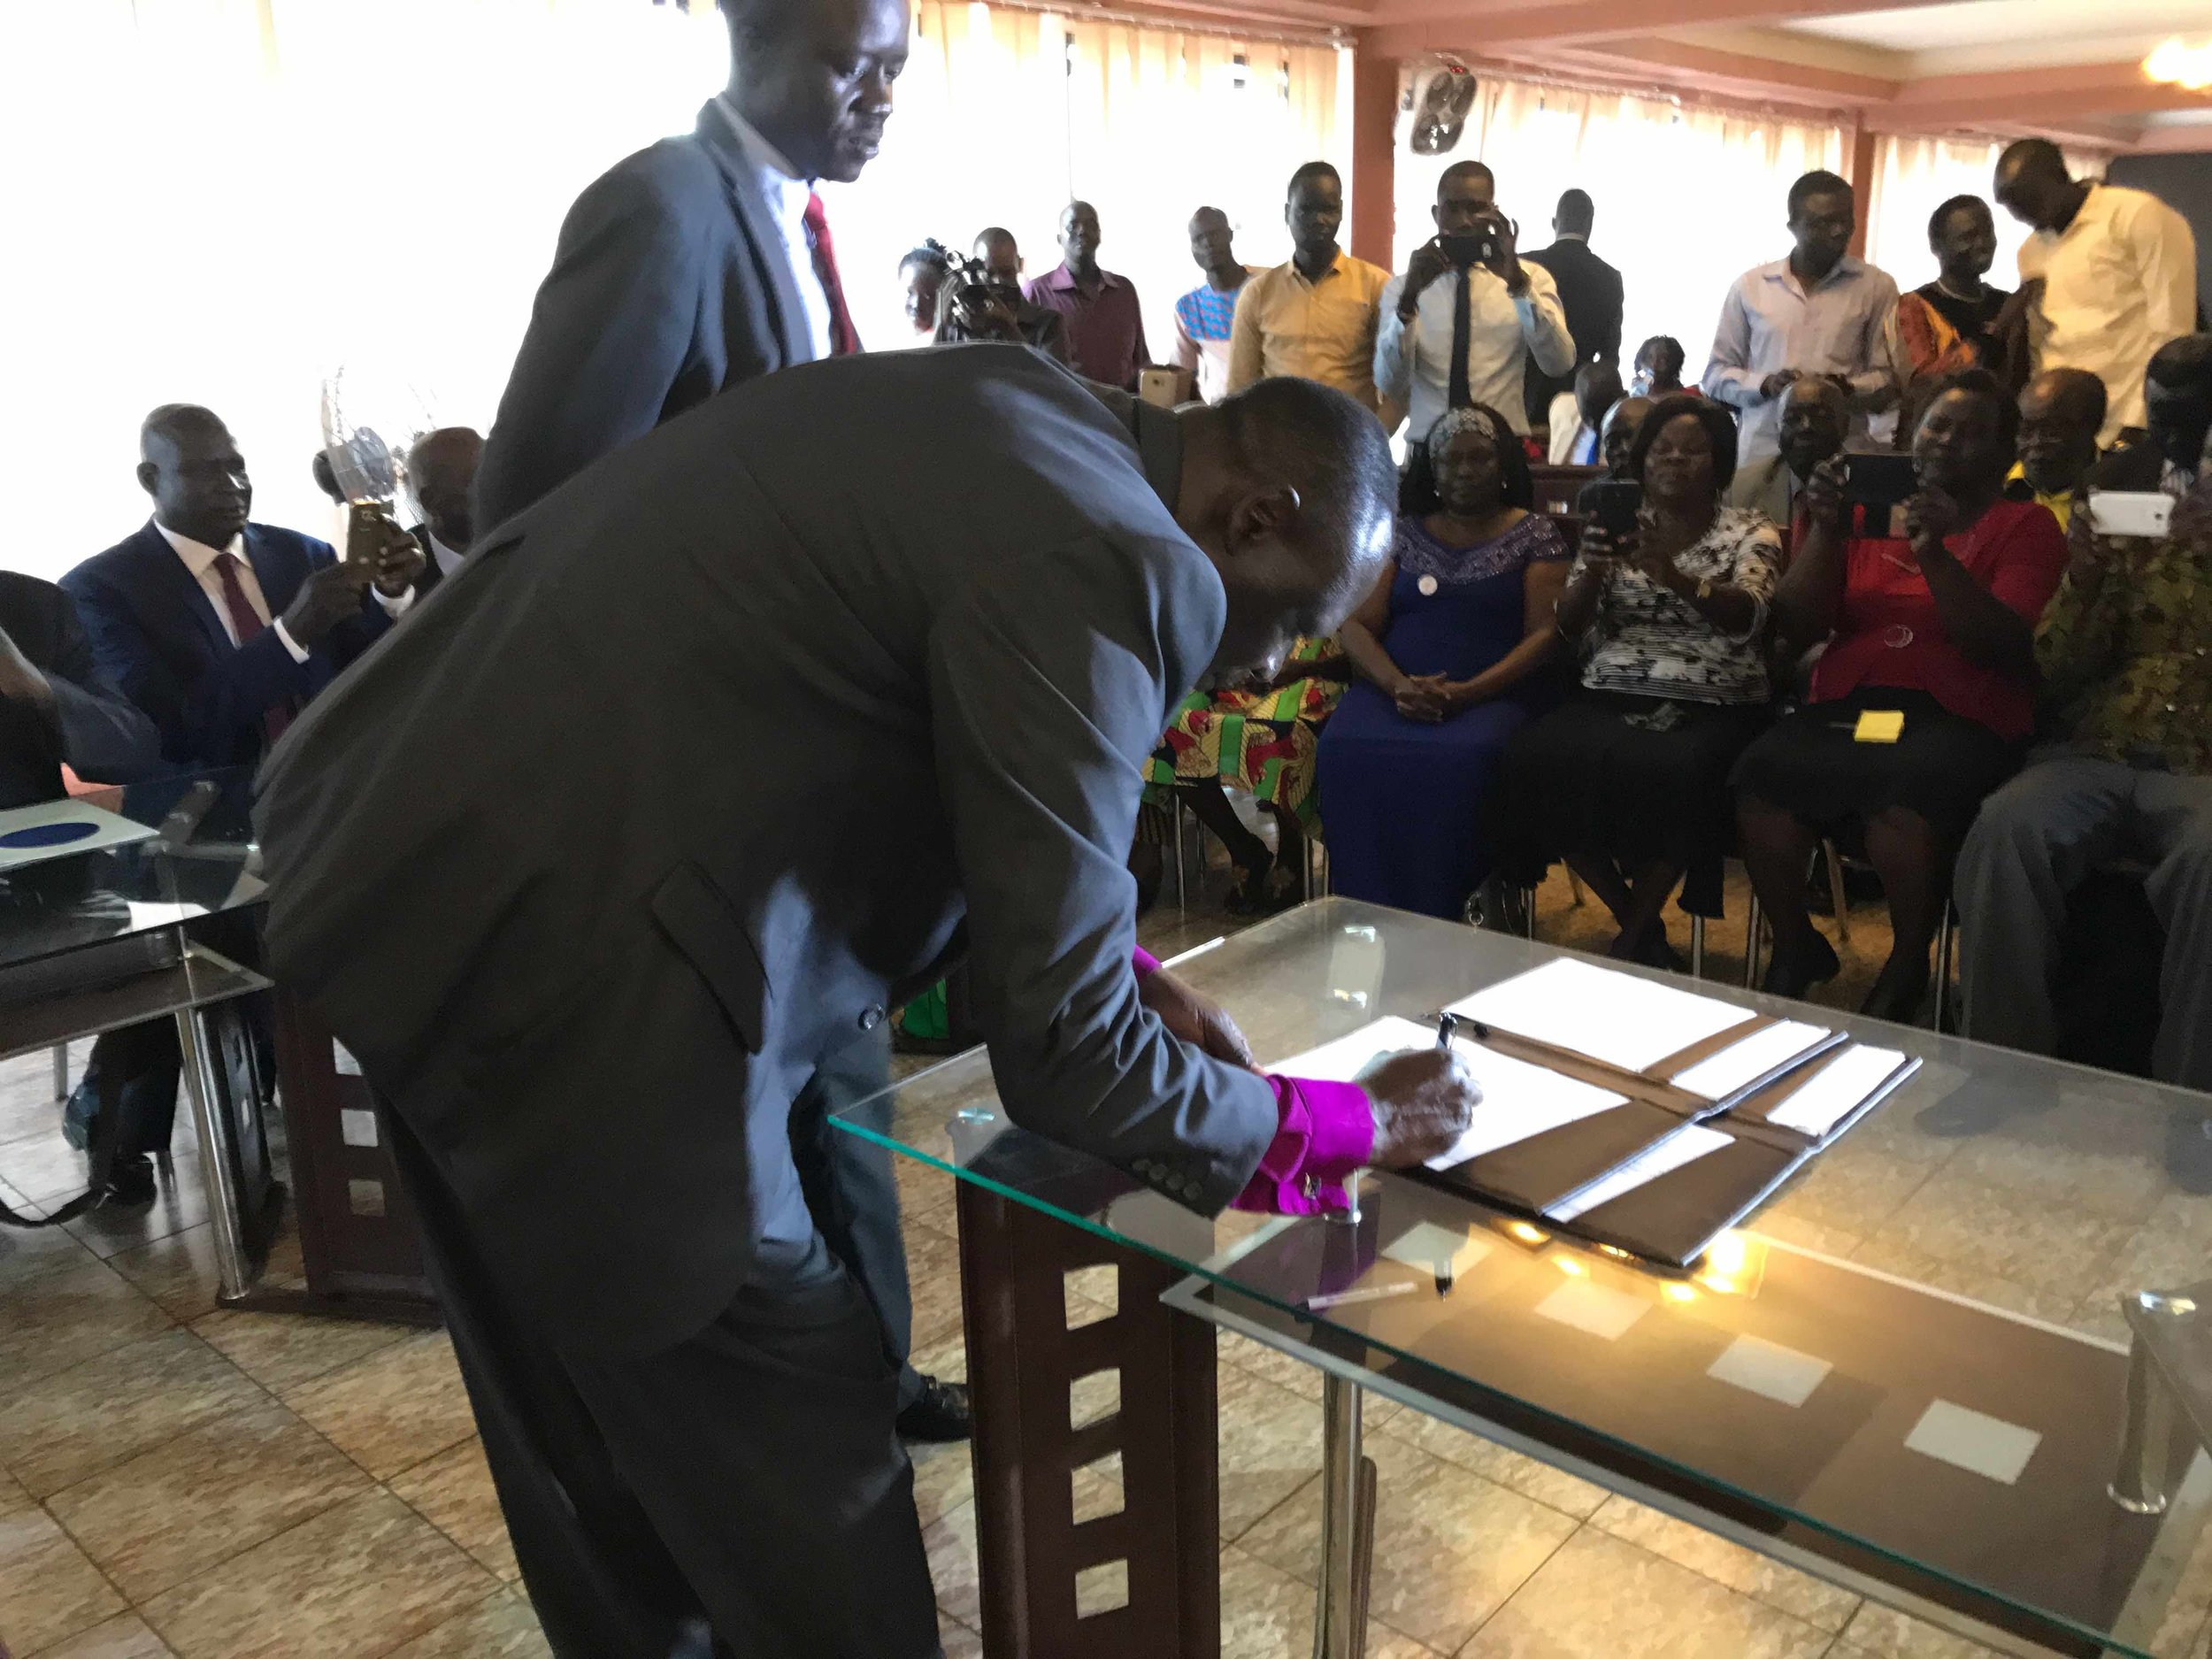 Bishop Taban signing the final documents after both signs have signed.